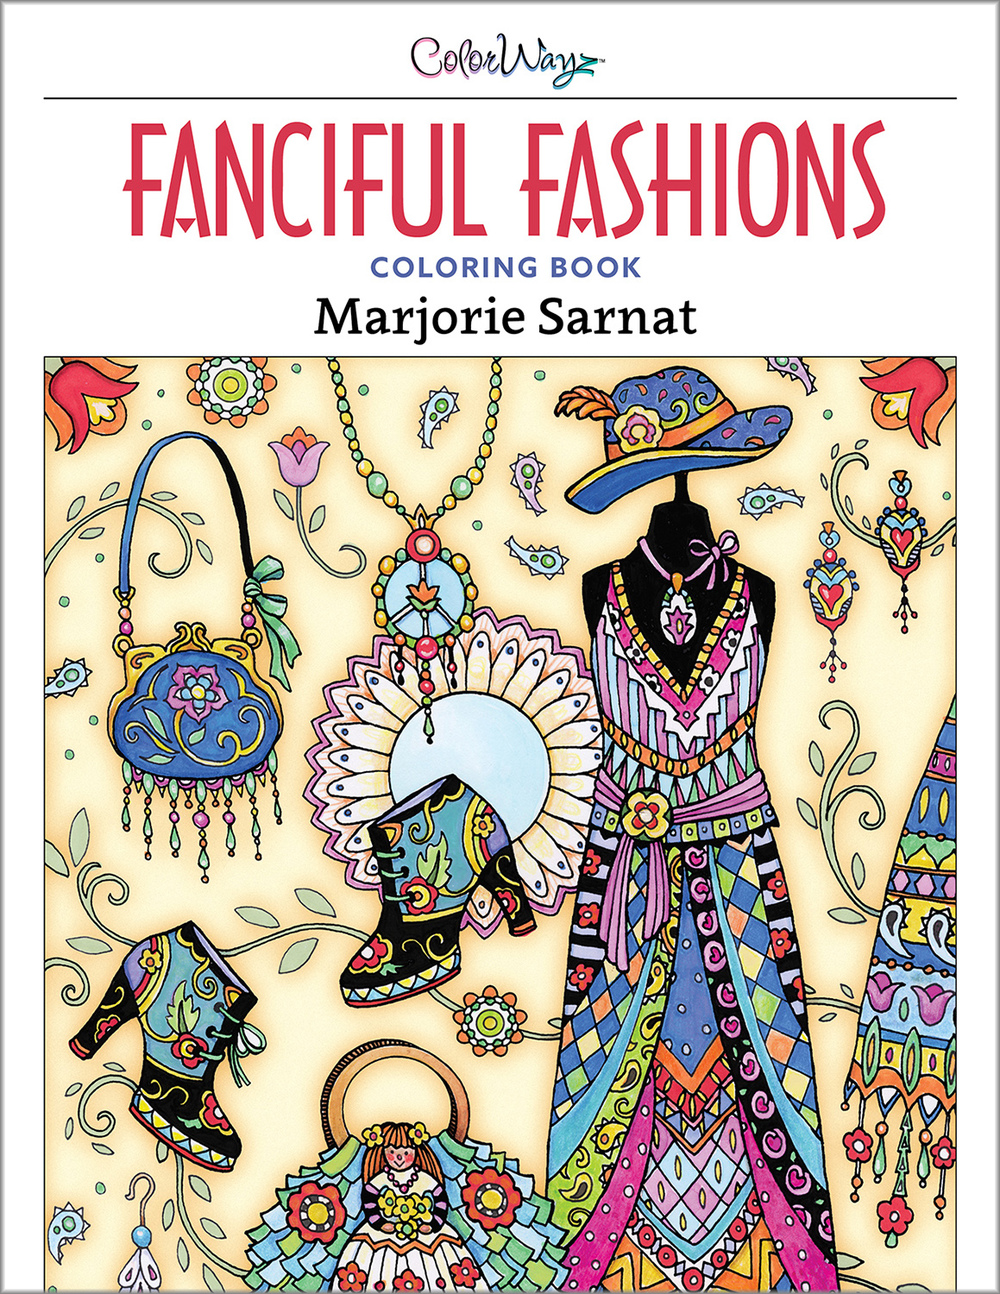 New Release Fanciful Fashions Coloring Book Marjorie Sarnat